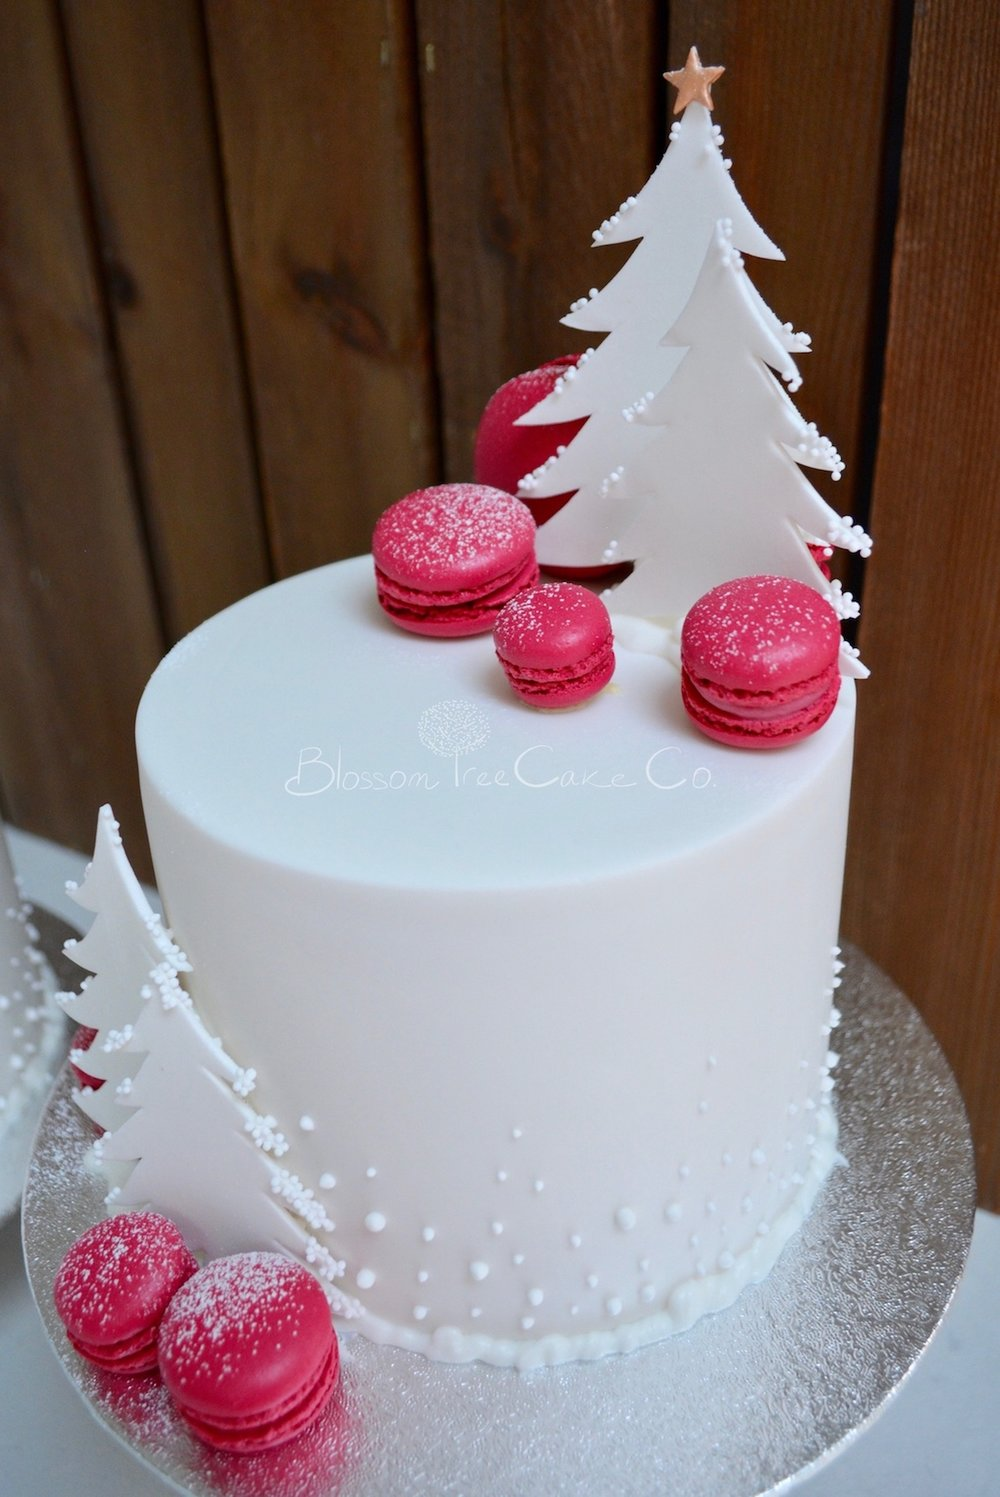 Christmas cakes 2016 by Blossom Tree Cake Company Harrogate North Yorkshire